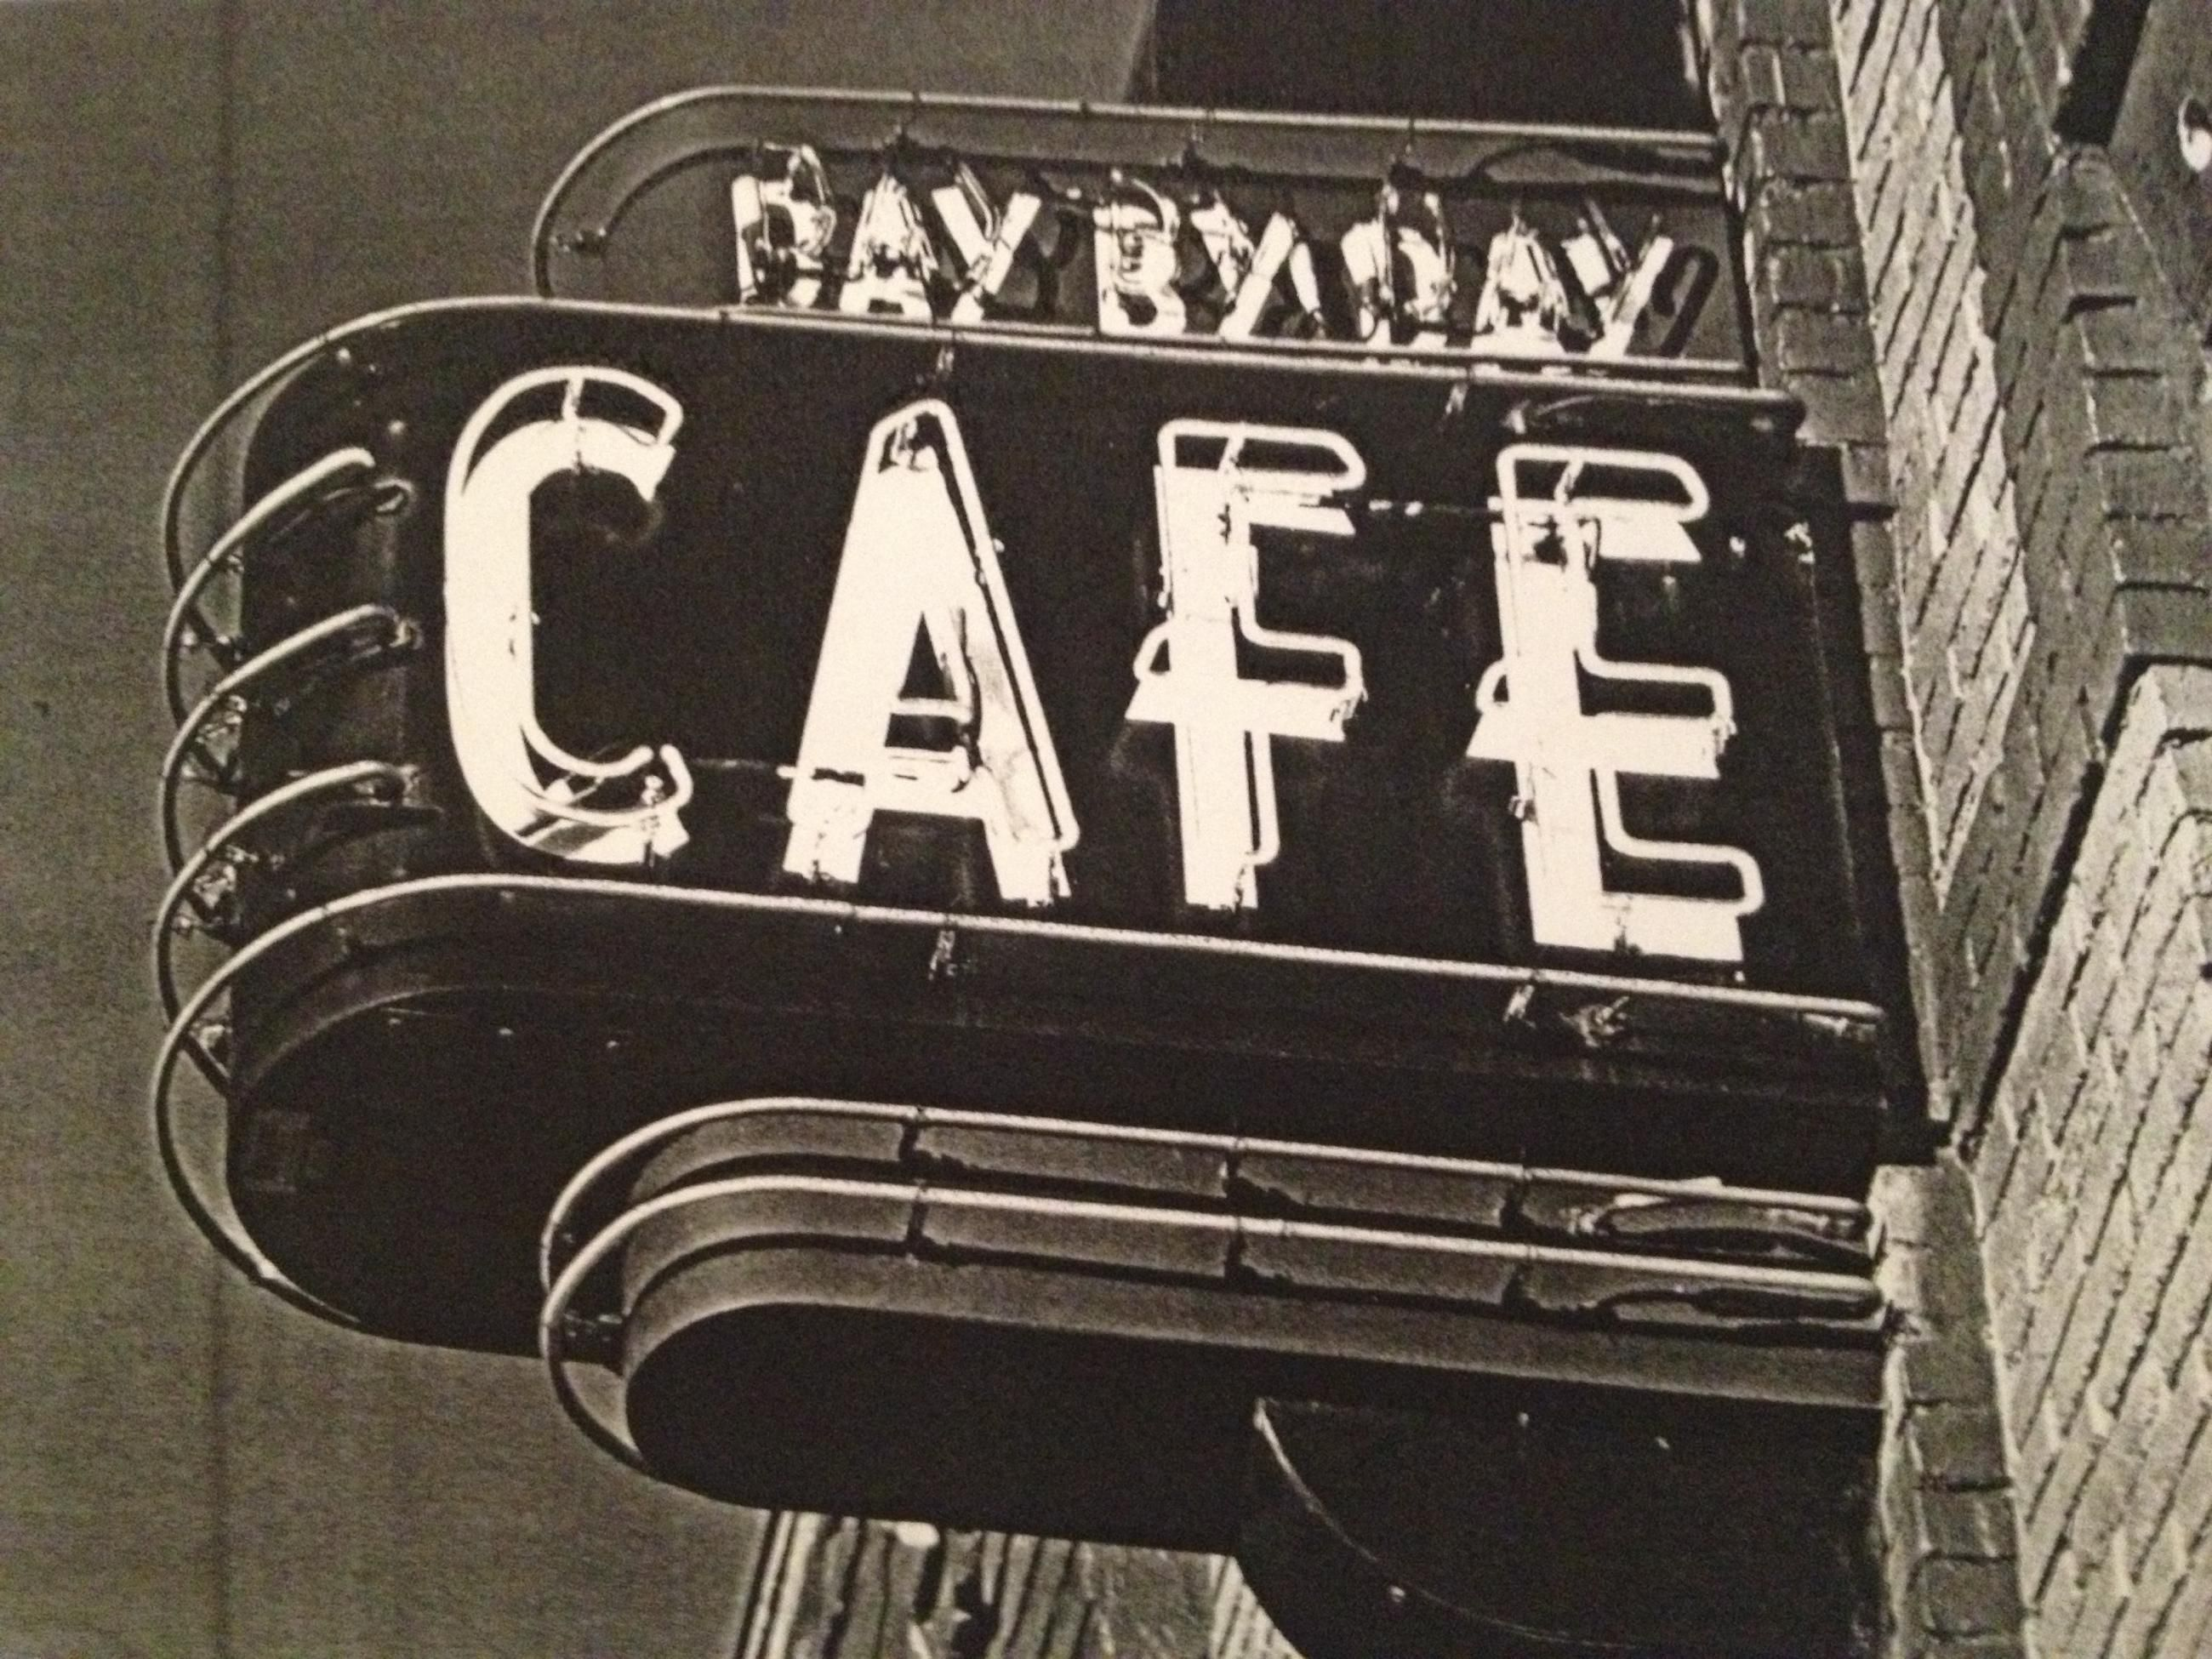 day by day cafe, St Paul, MN